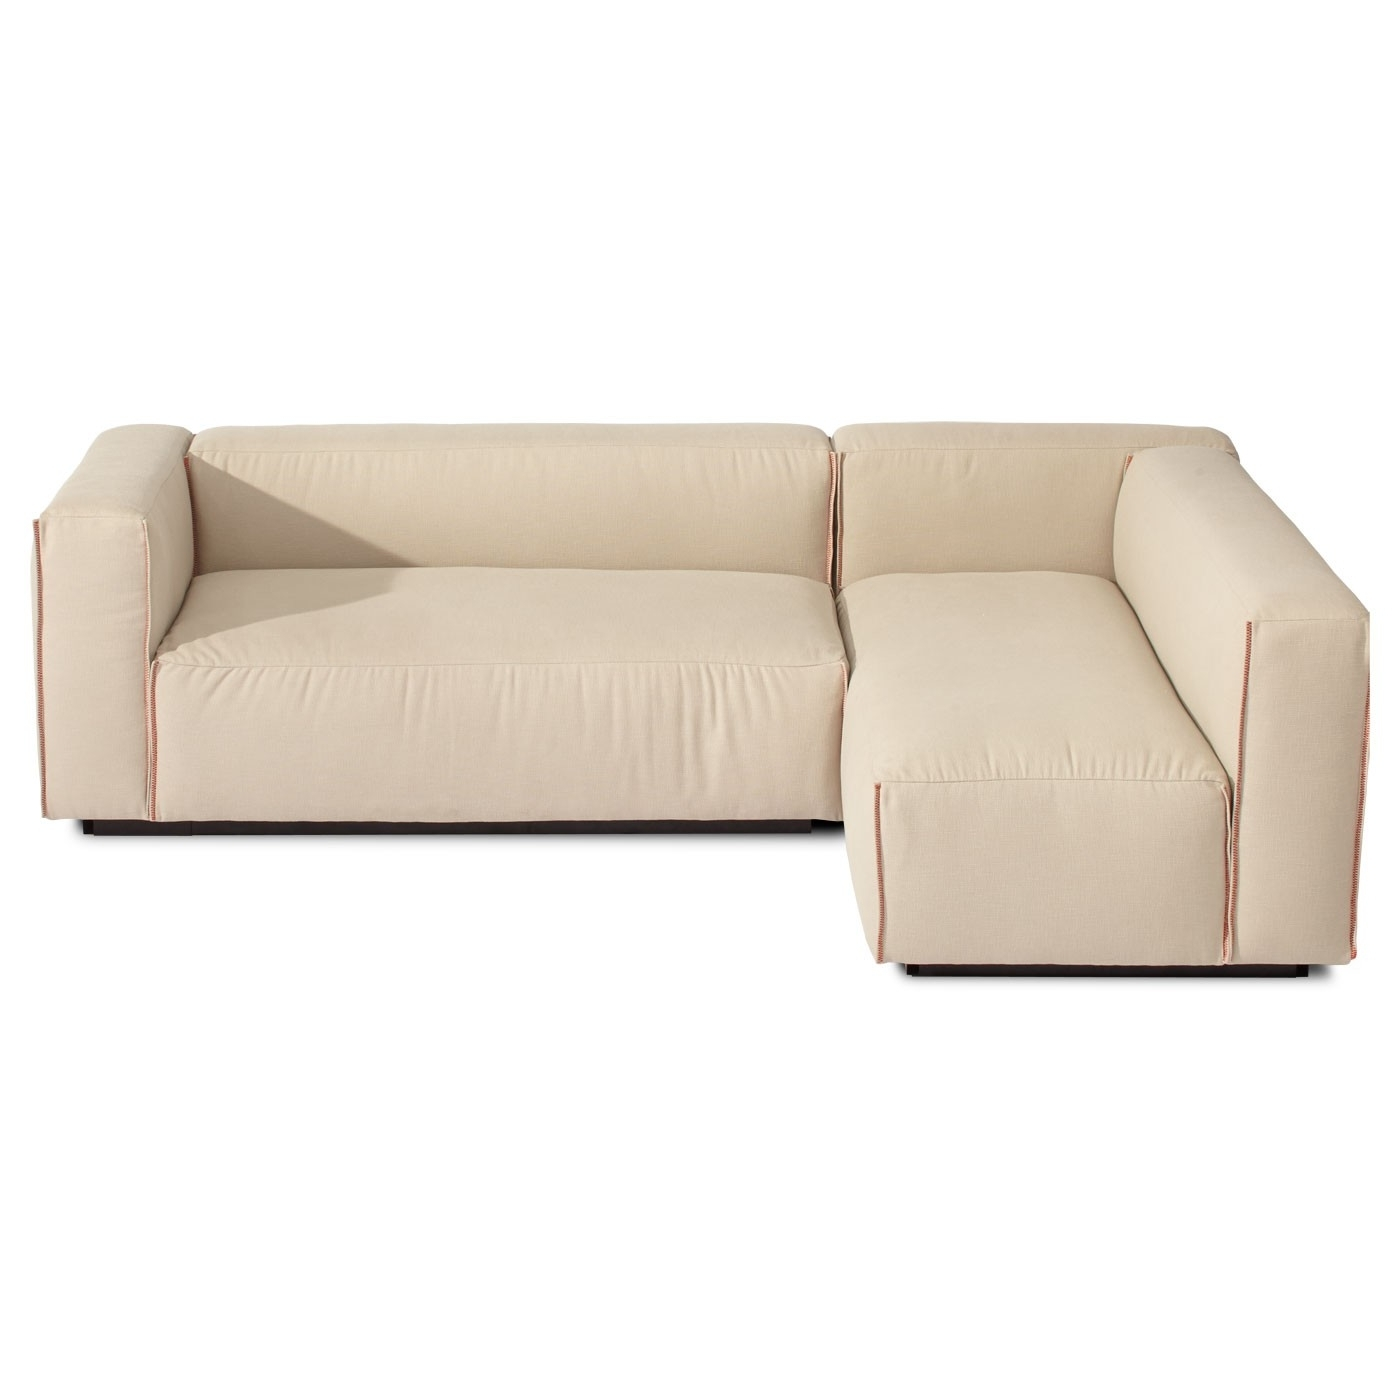 Most Popular Small Modular Sofas Throughout Small Space Modern Furniture, Small Curved Sofa Modern Sofas For (View 3 of 15)